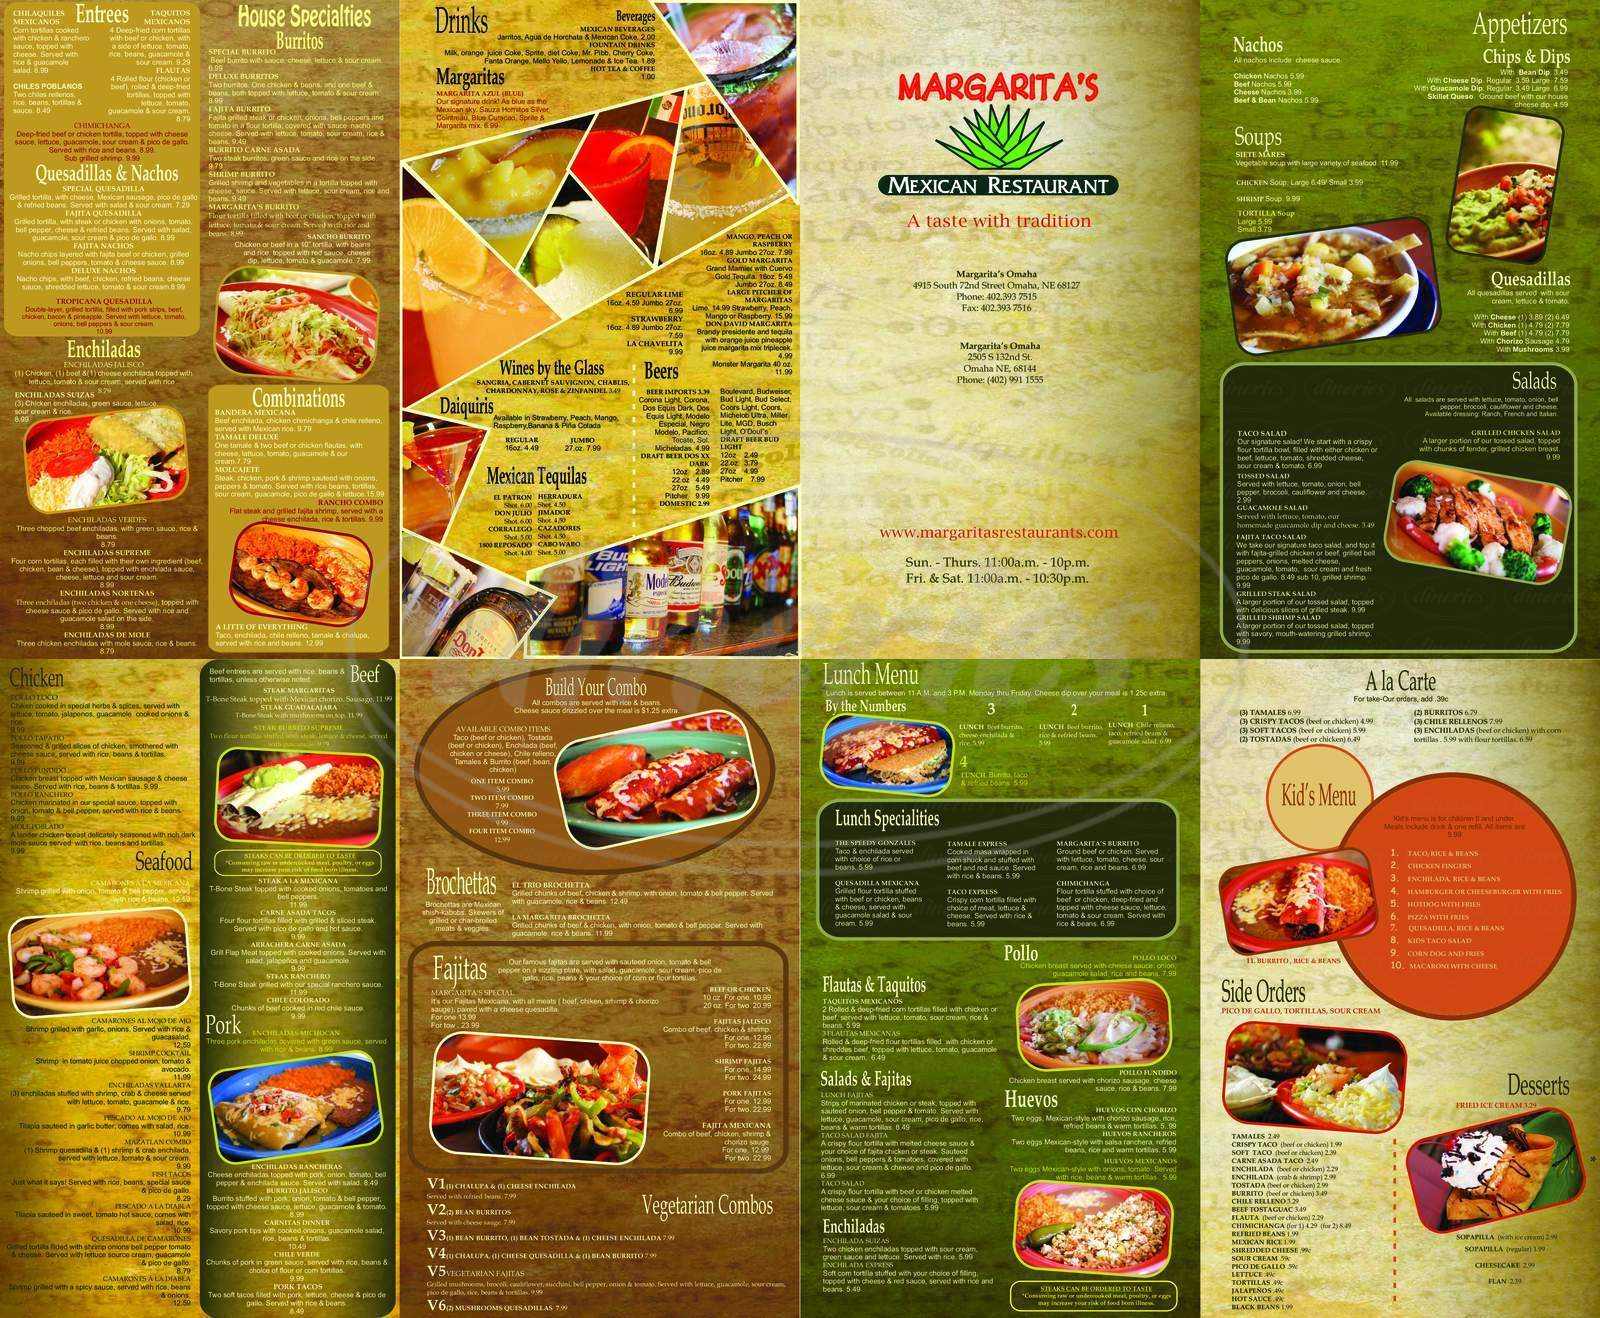 menu for Margarita's Mexican Restaurant